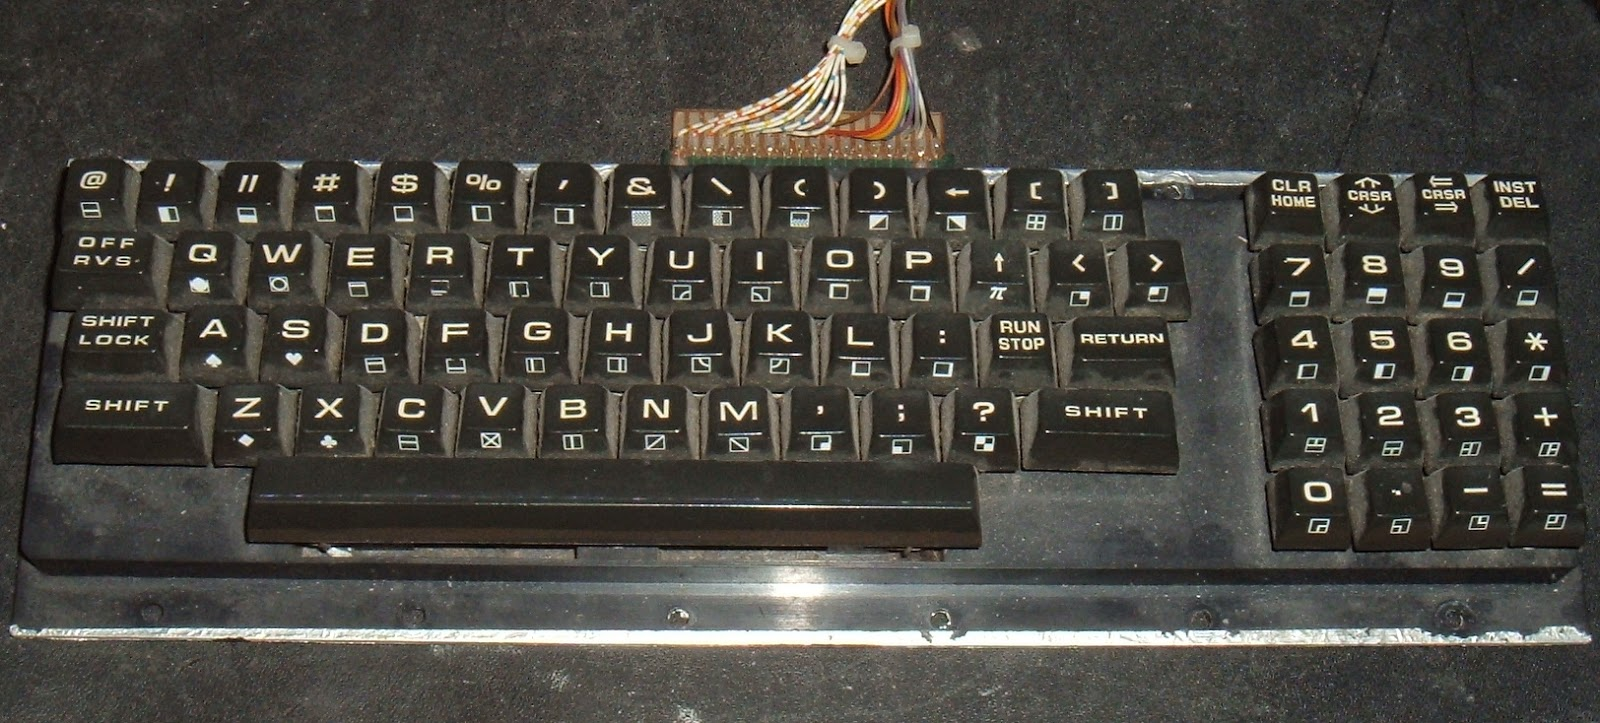 Tynemouth software commodore pet repair part 3 power reset clock the pet came with two keyboard types the 4032 has the normal or graphics keyboard which rather oddly has no numbers above the letters only symbols buycottarizona Image collections